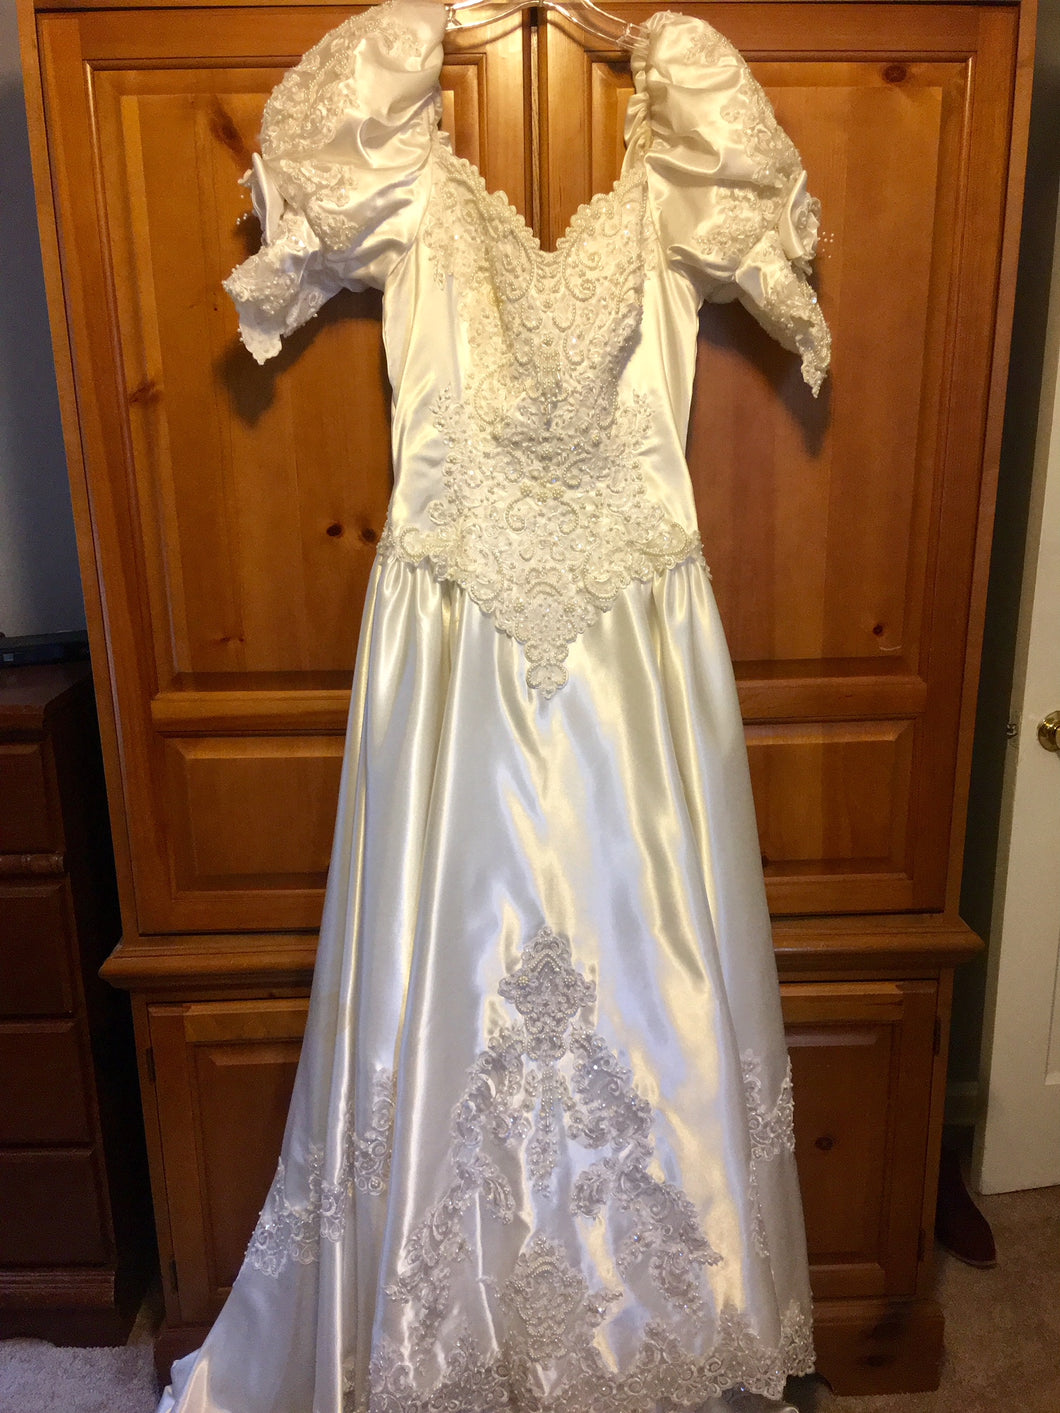 Mori Lee 'Princess' size 12 used wedding dress front view on hanger